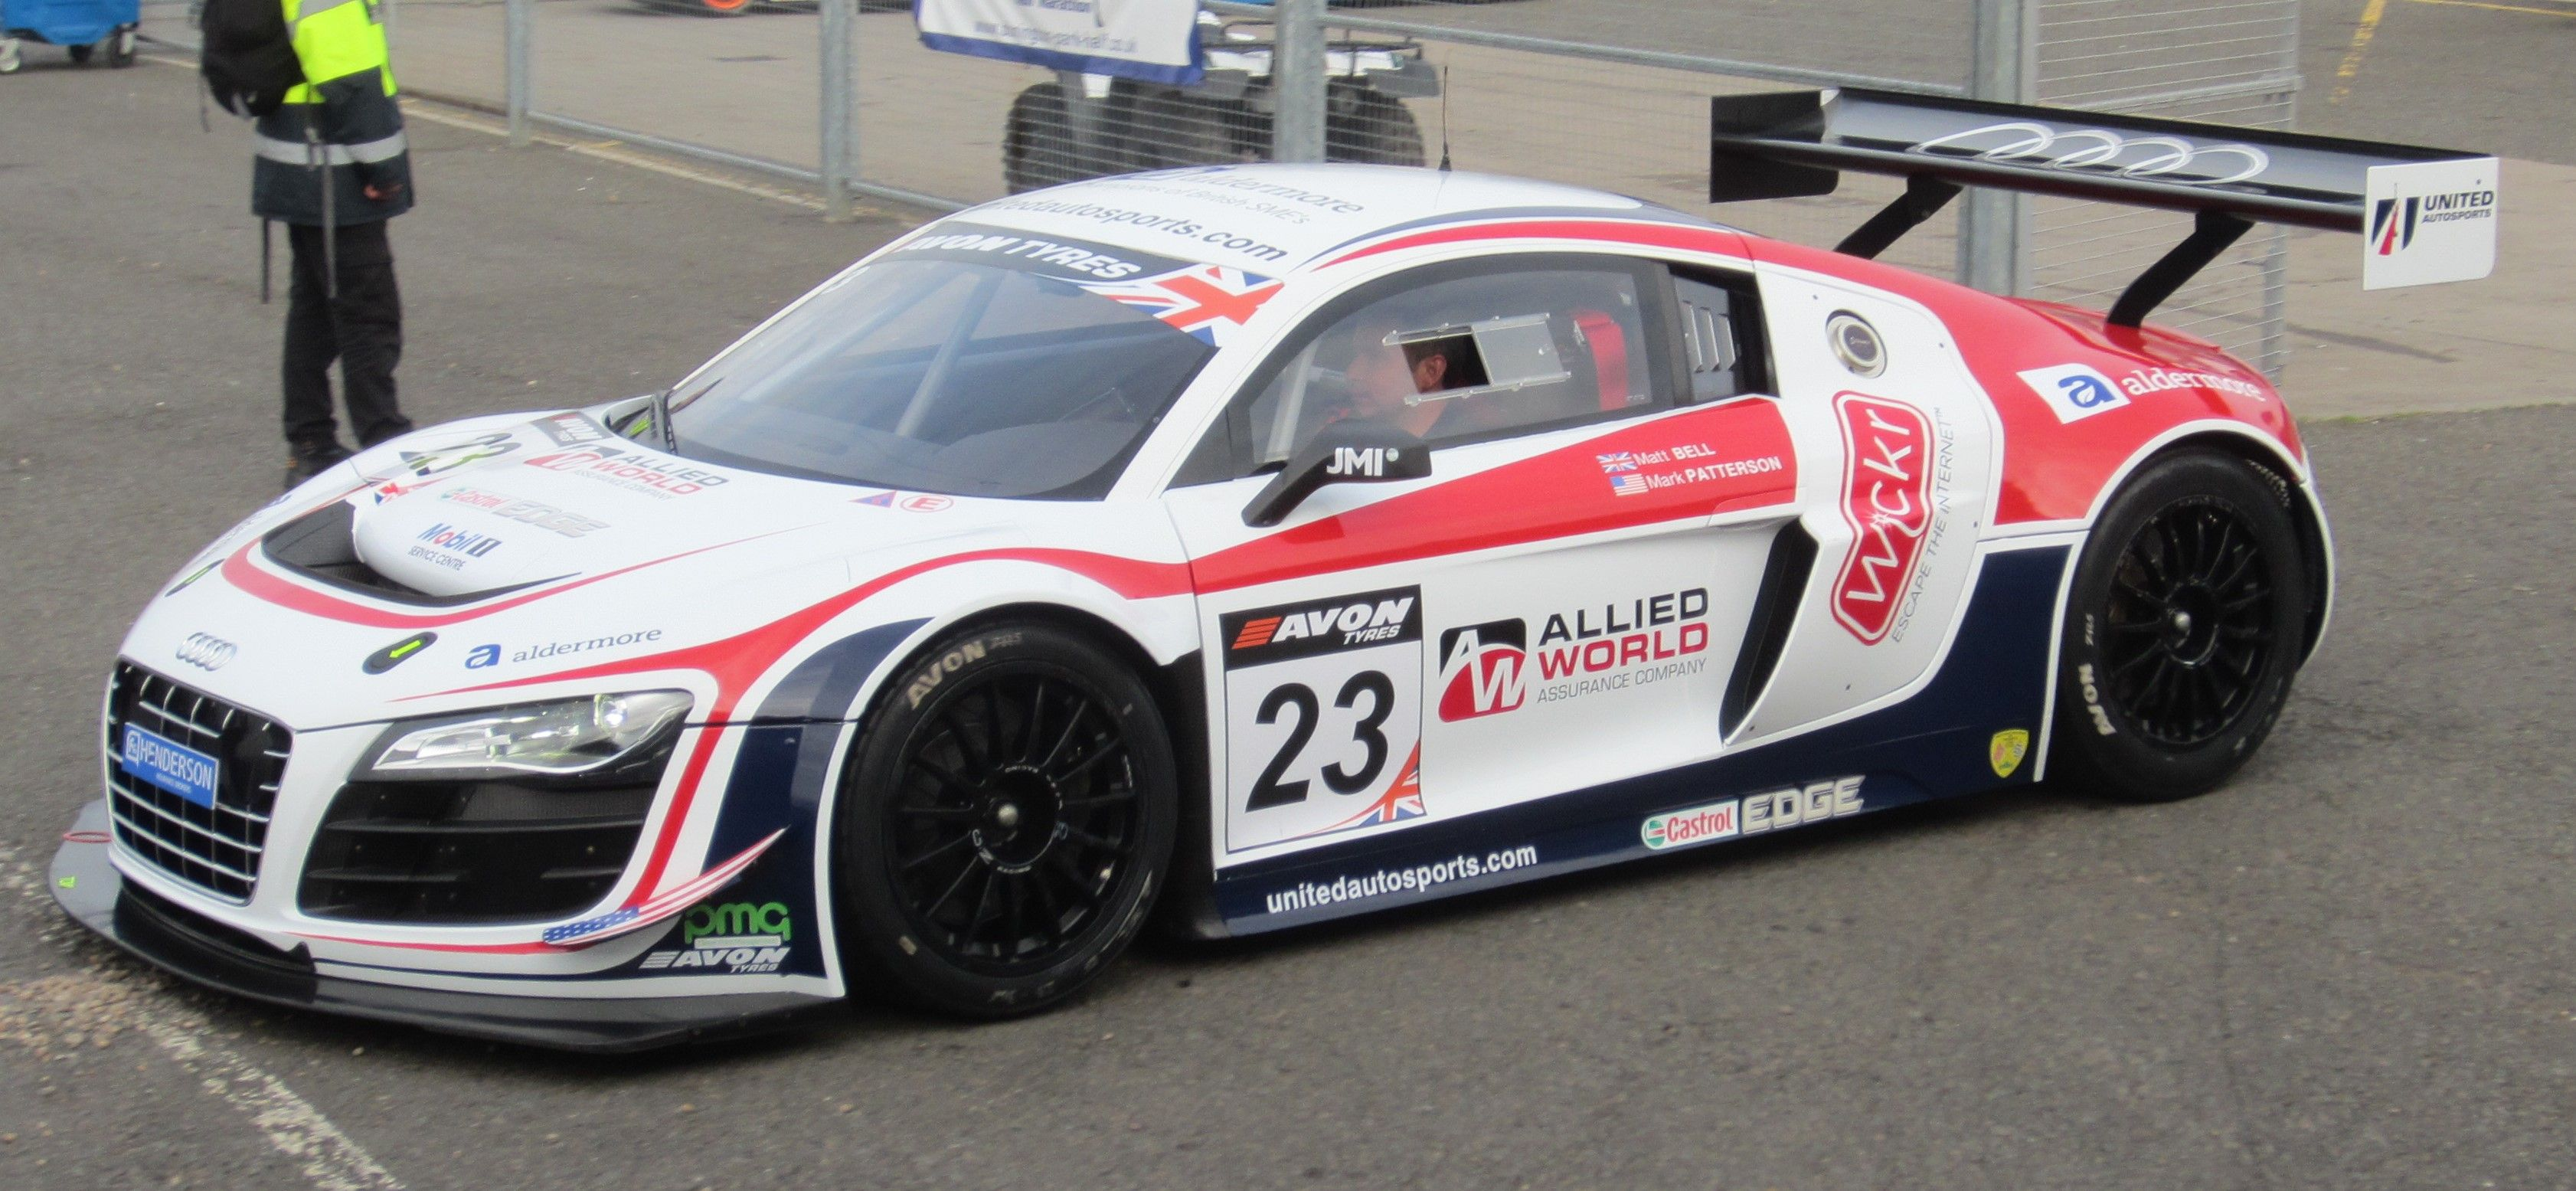 Two Audi R8 Lms Ultra Cars Form Spearhead At The Nurburgring 24